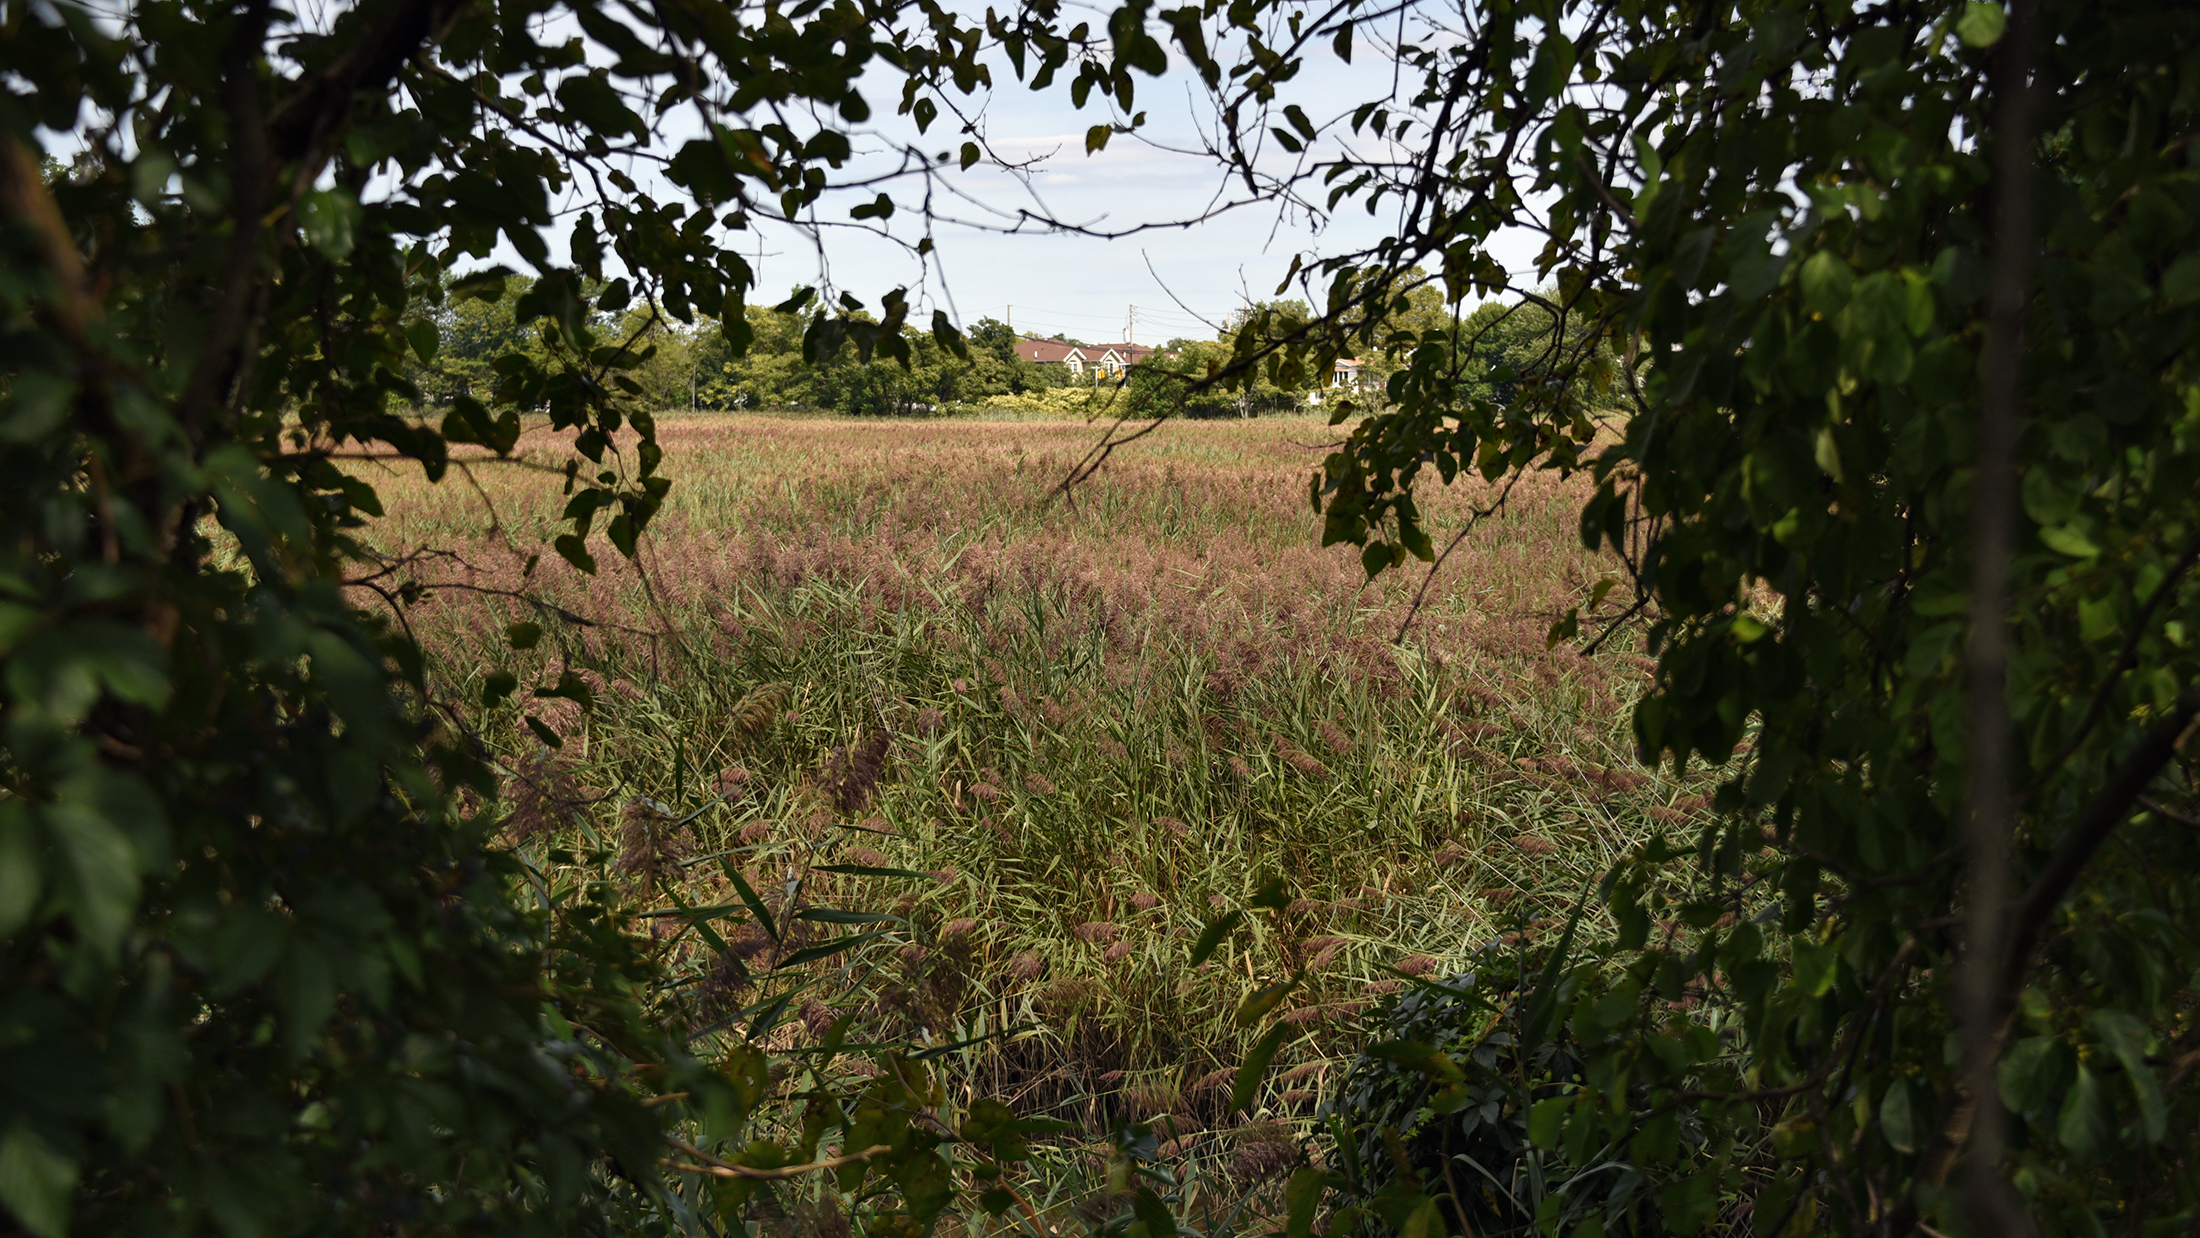 A field of grass and wildflowers viewed through tree branches.